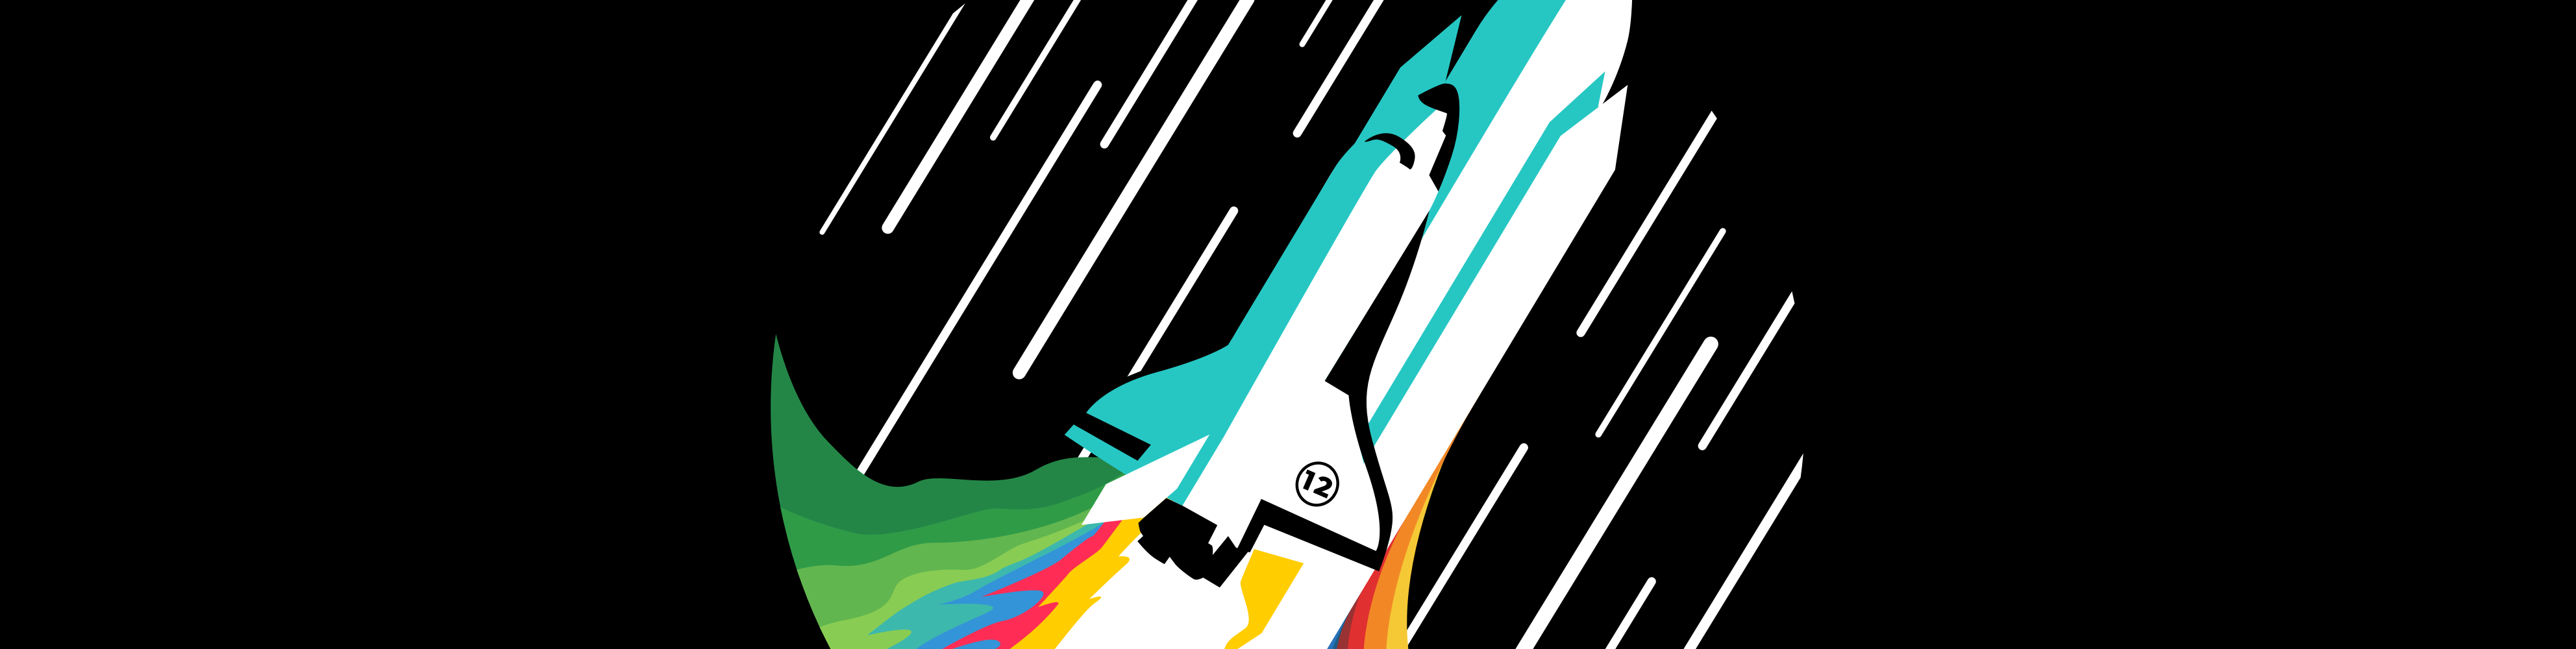 Illustration of a rocket going to space